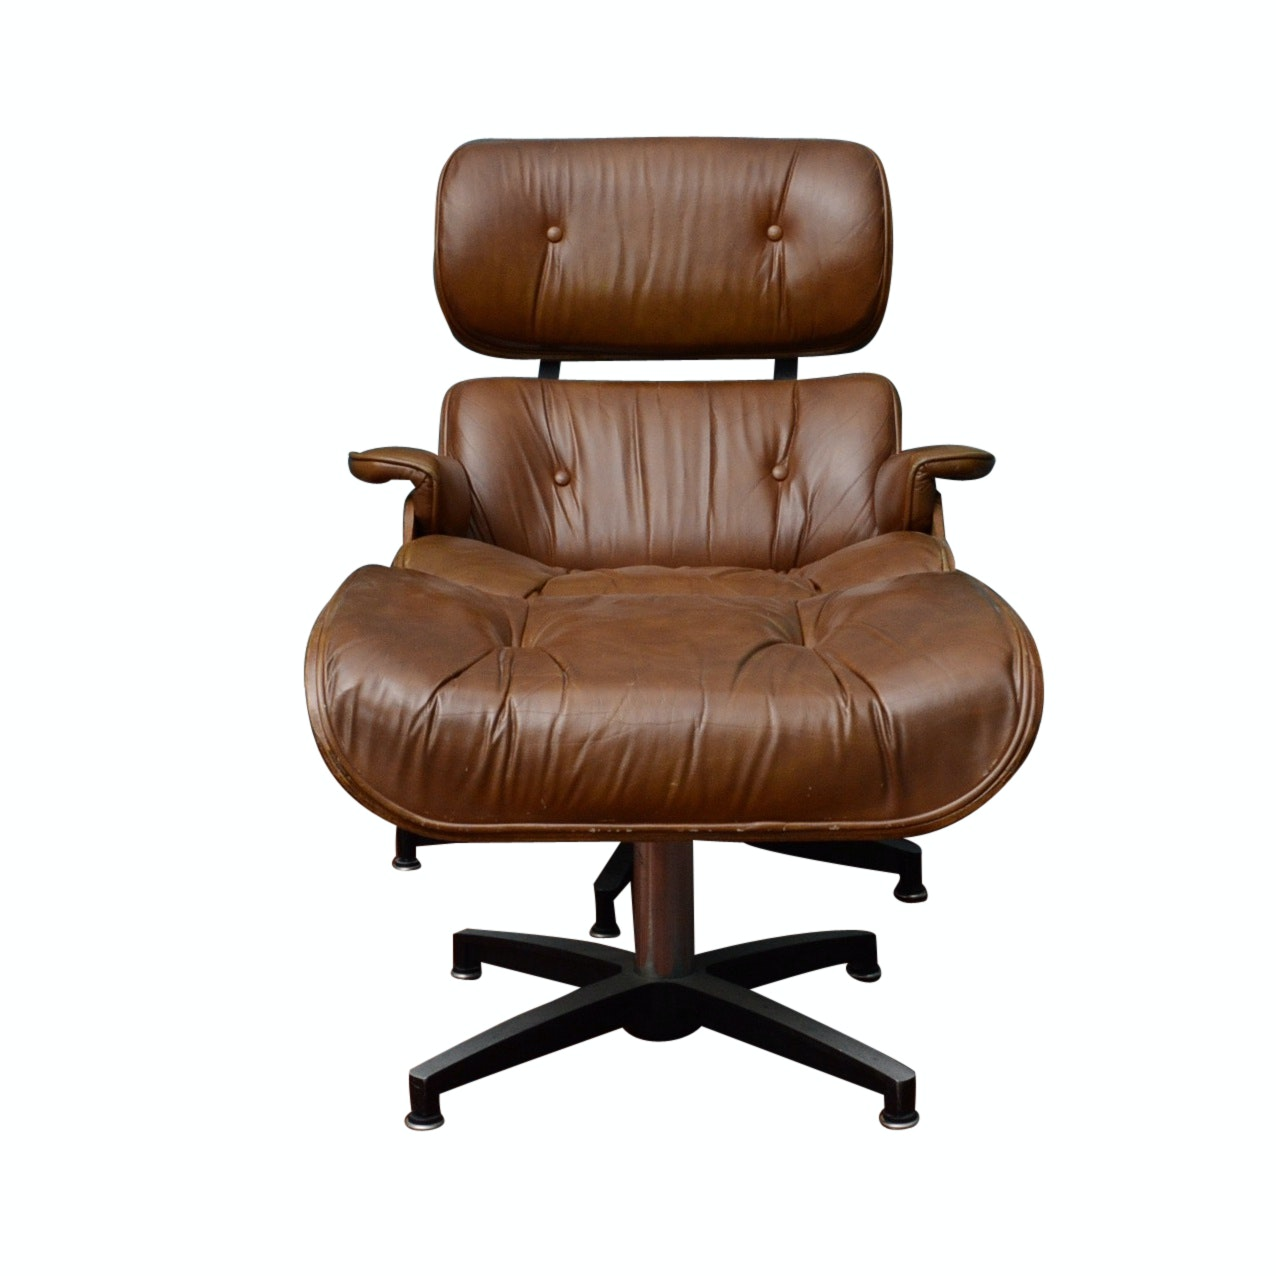 Charles Eames Style Leather Swivel Chair and Ottoman for Herman Miller